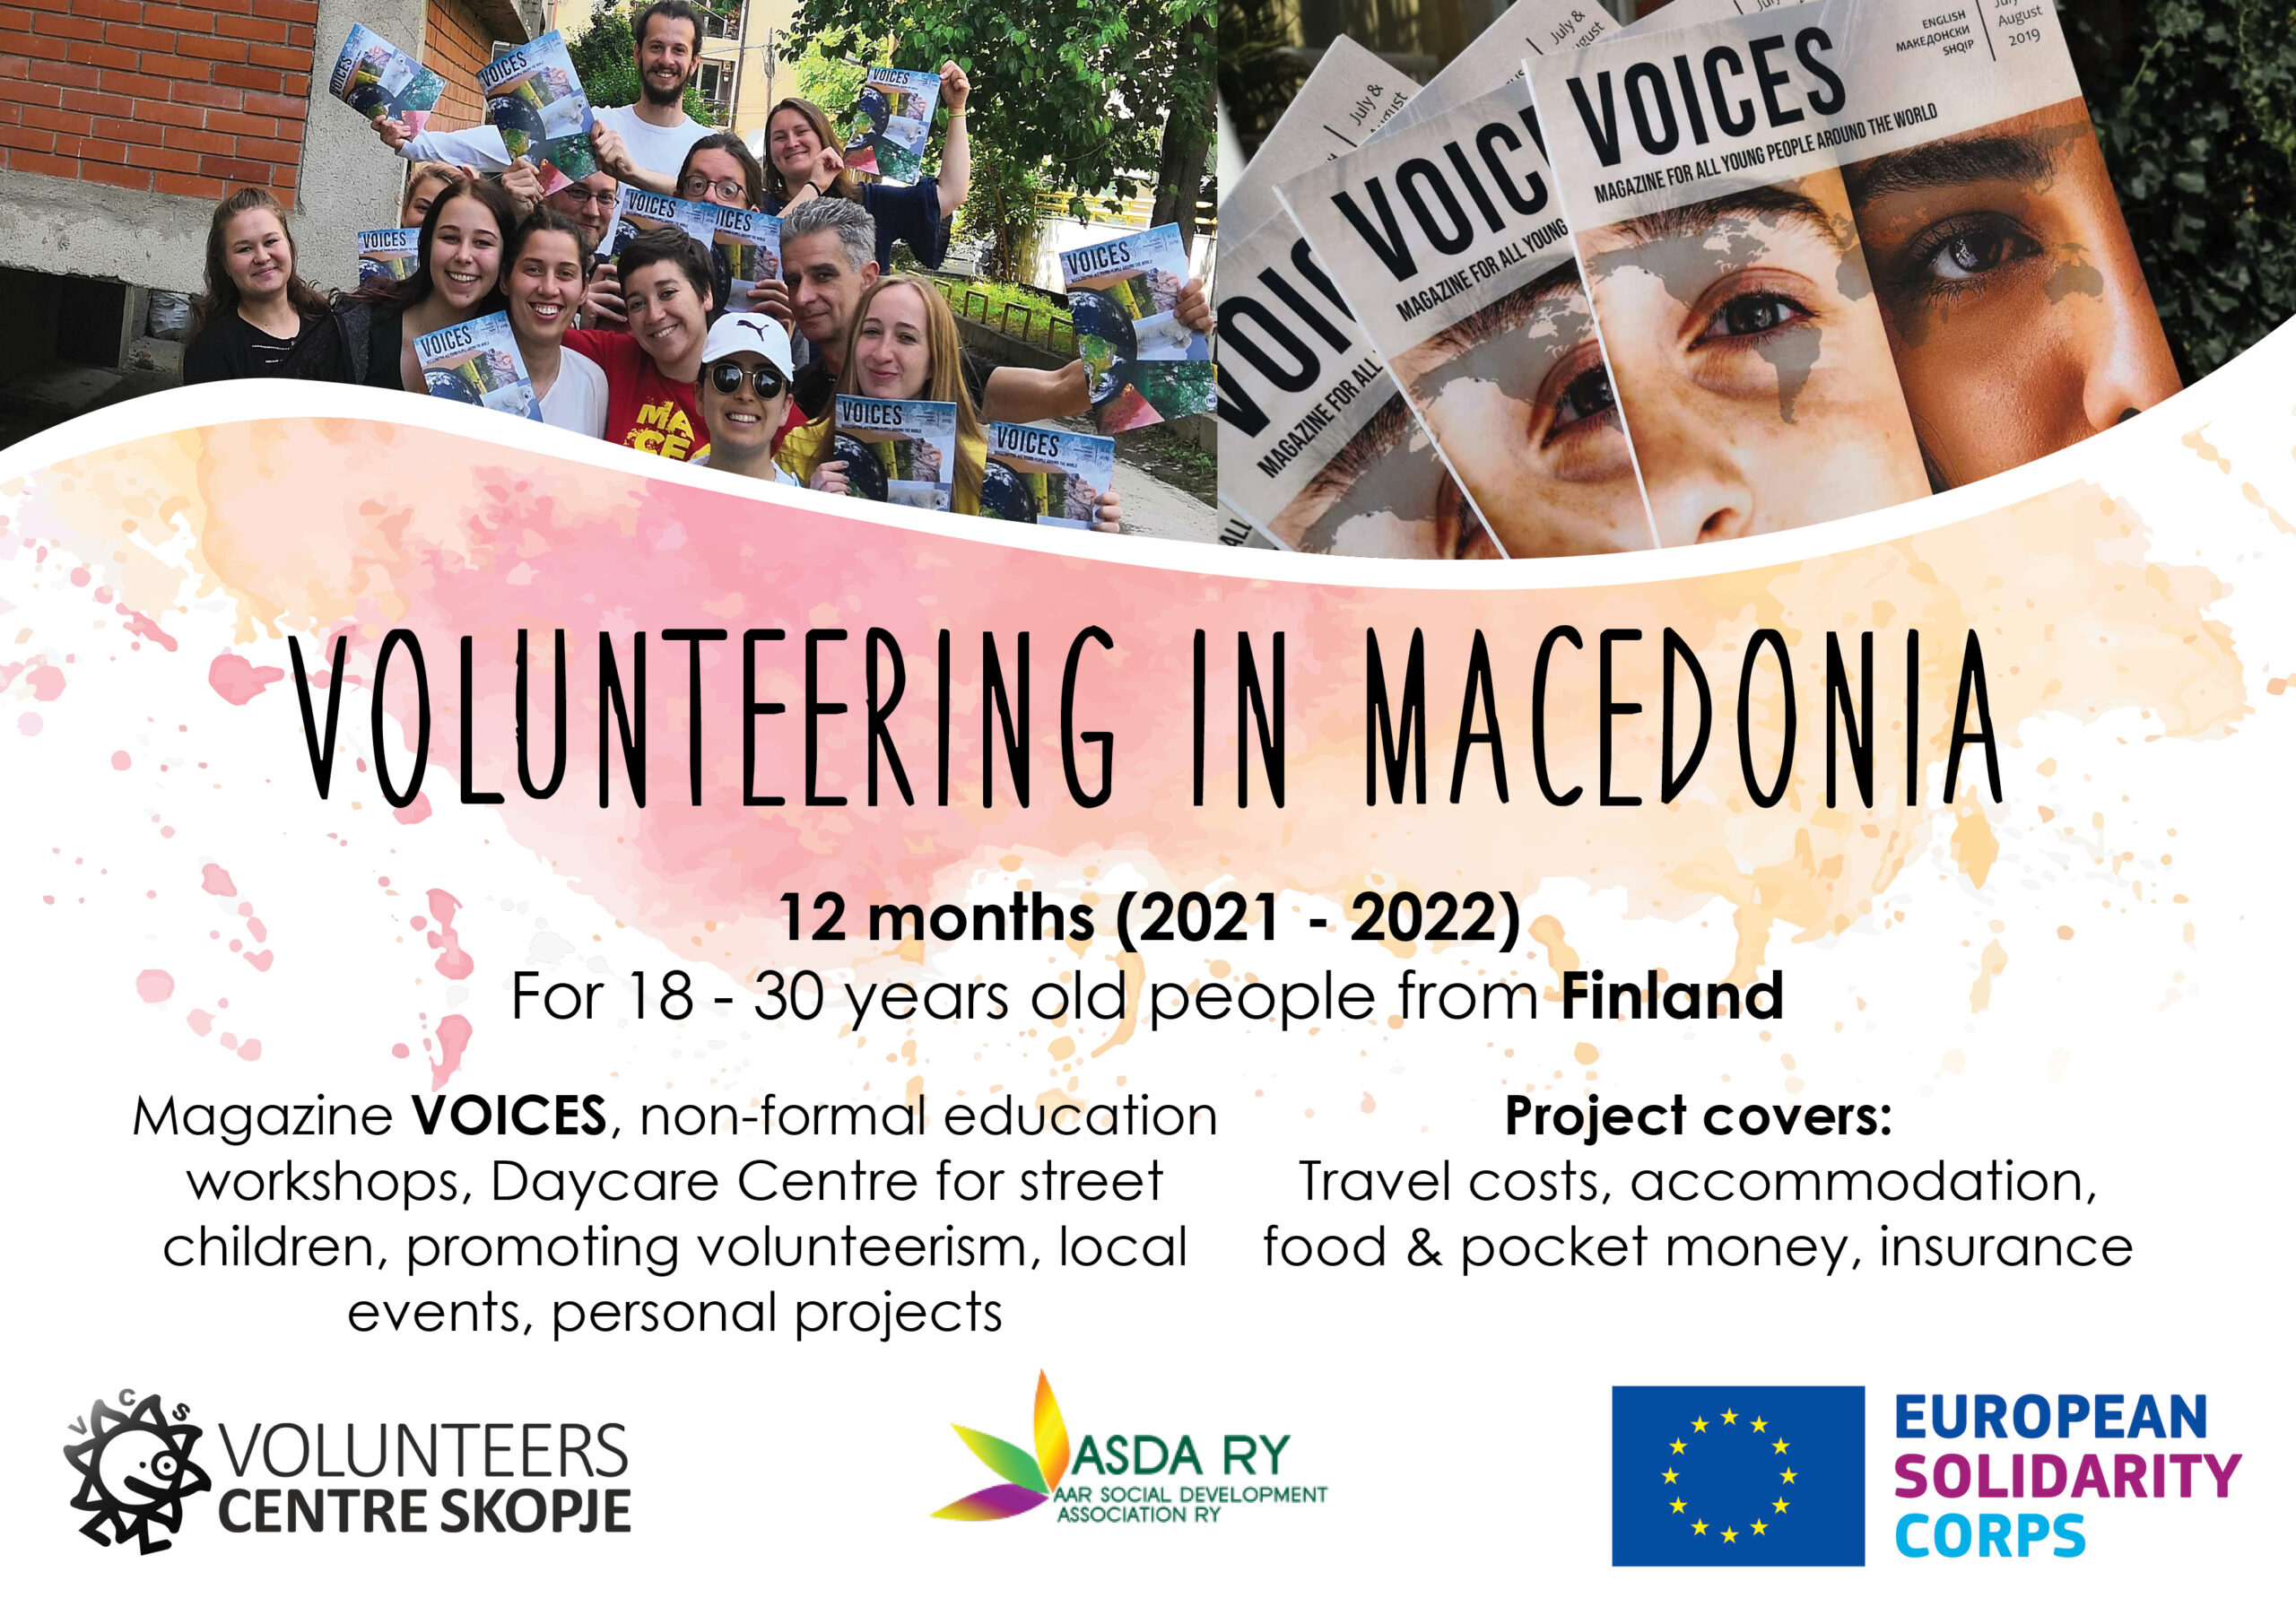 Call for volunteers from Finland to Macedonia!